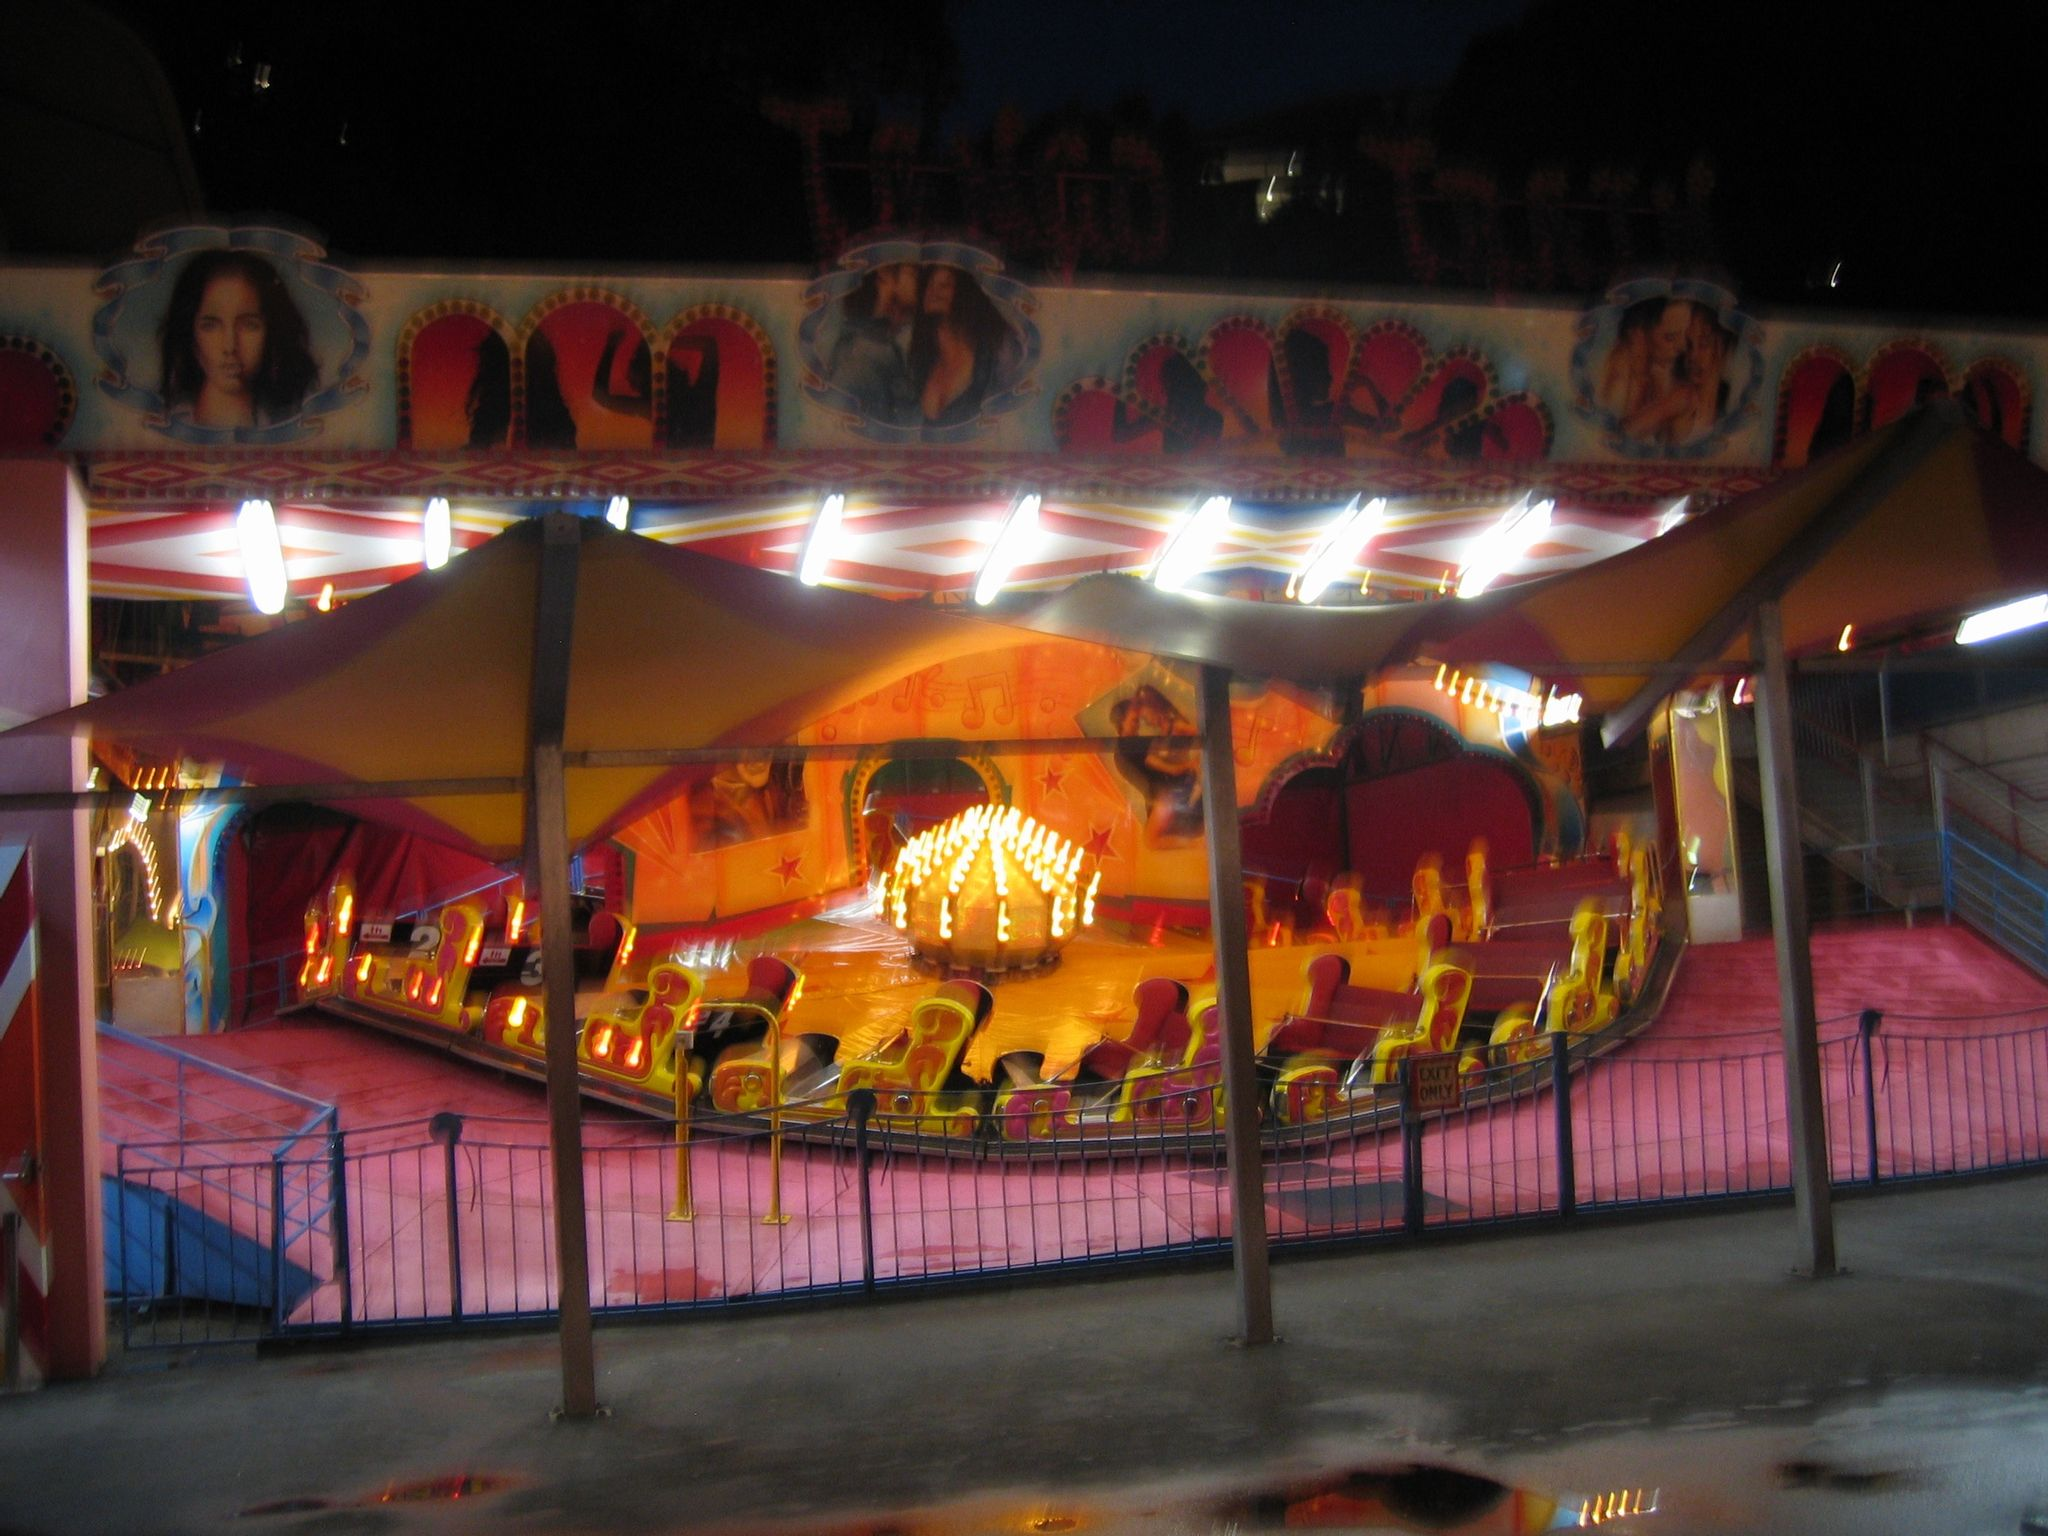 A blurry photo of a fairground ride with seats that move around a track in a loop.